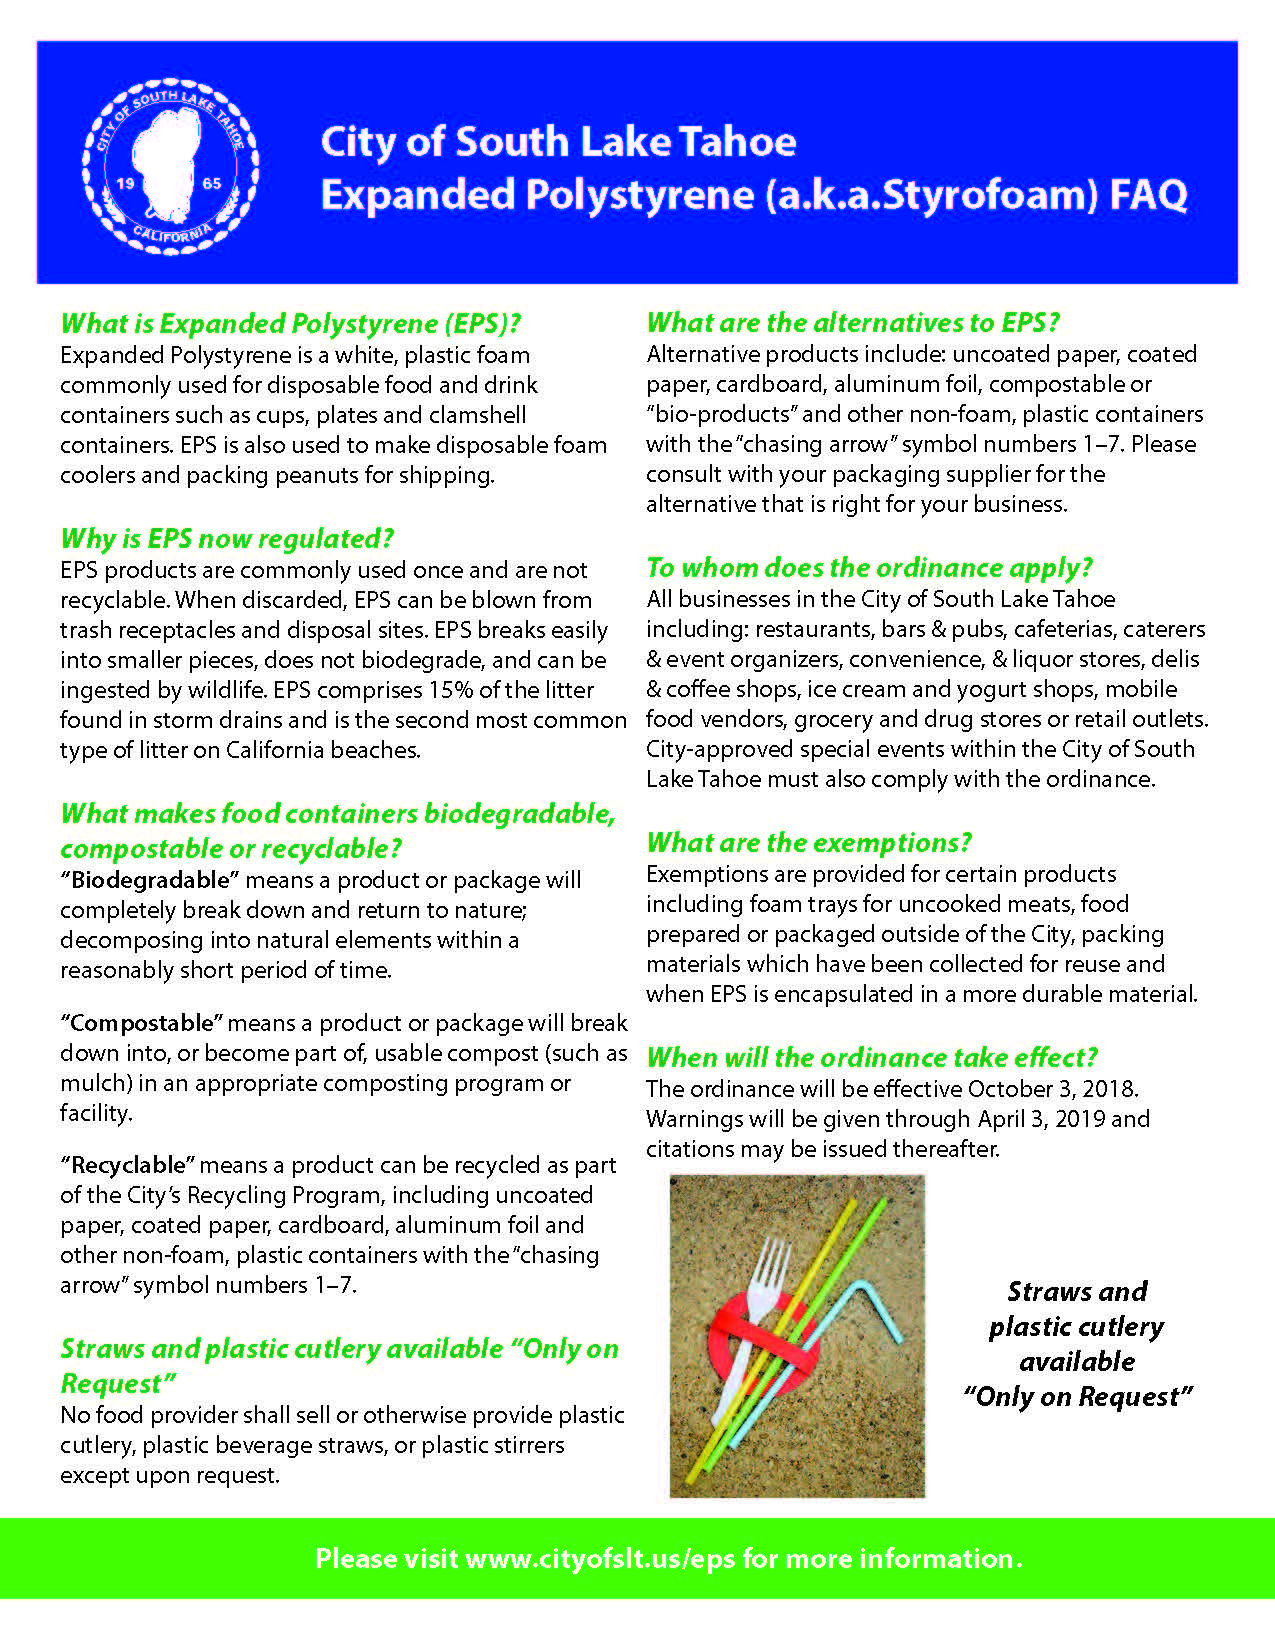 Expanded Polystyrene (EPS) Flyer page 2